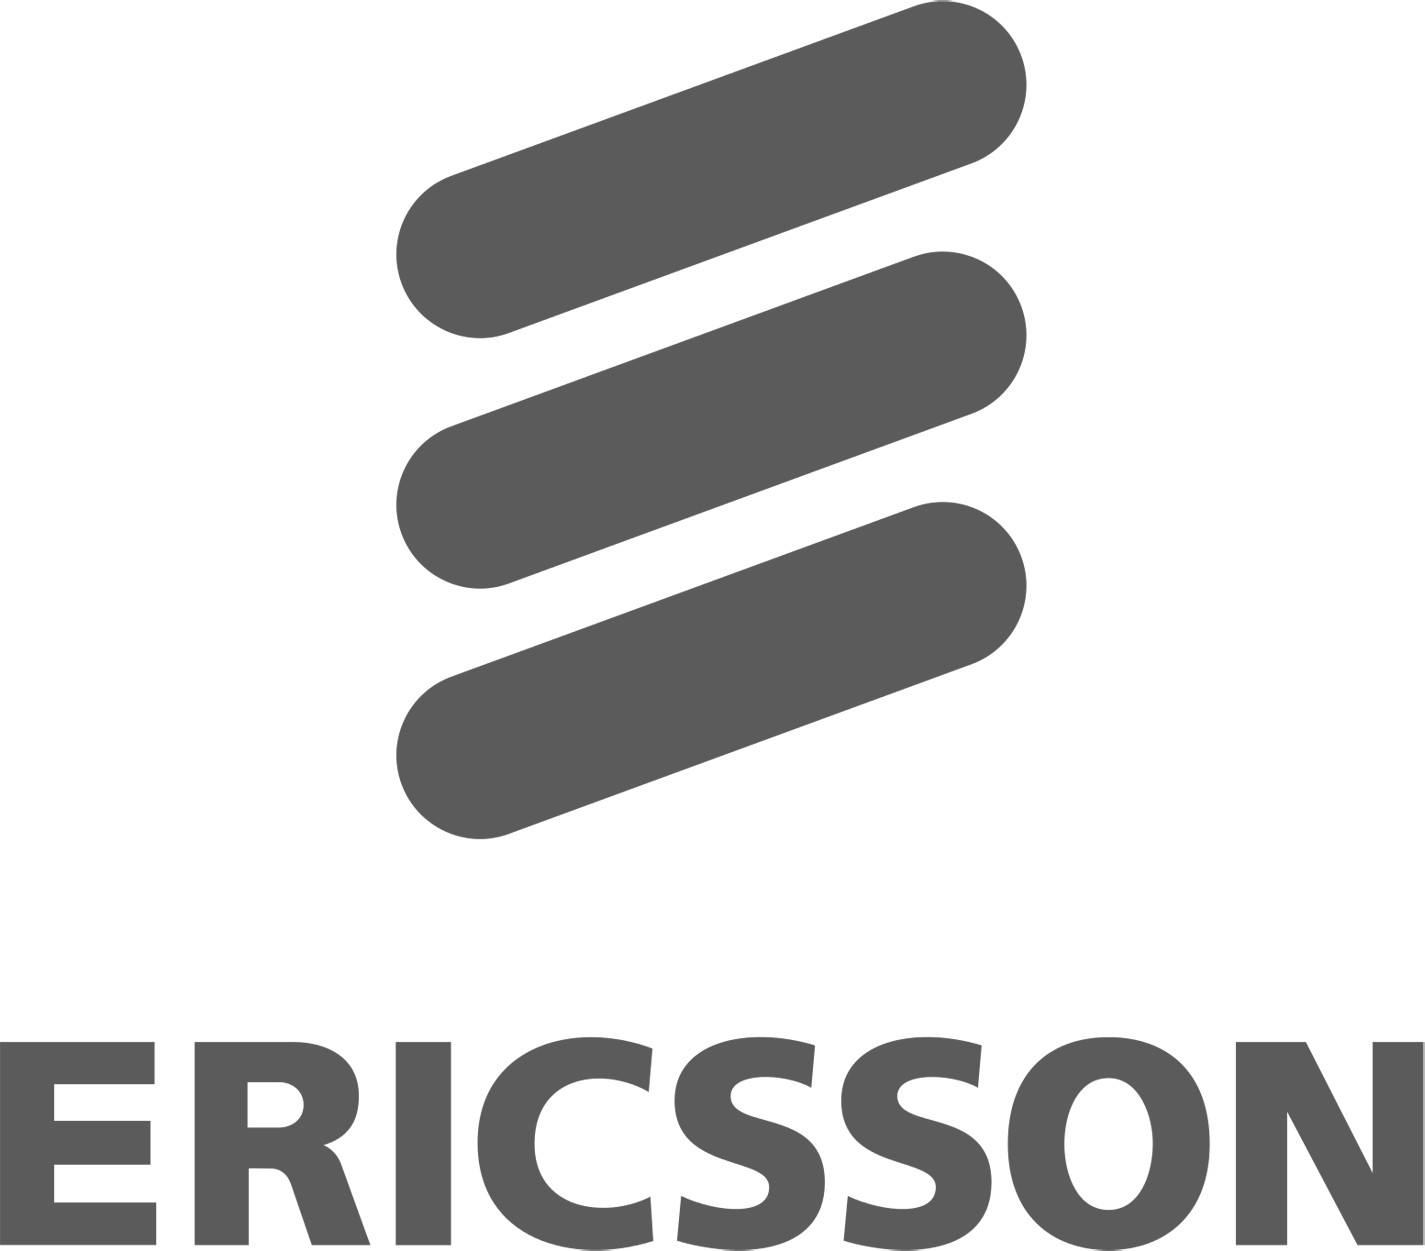 The logo of Ericsson